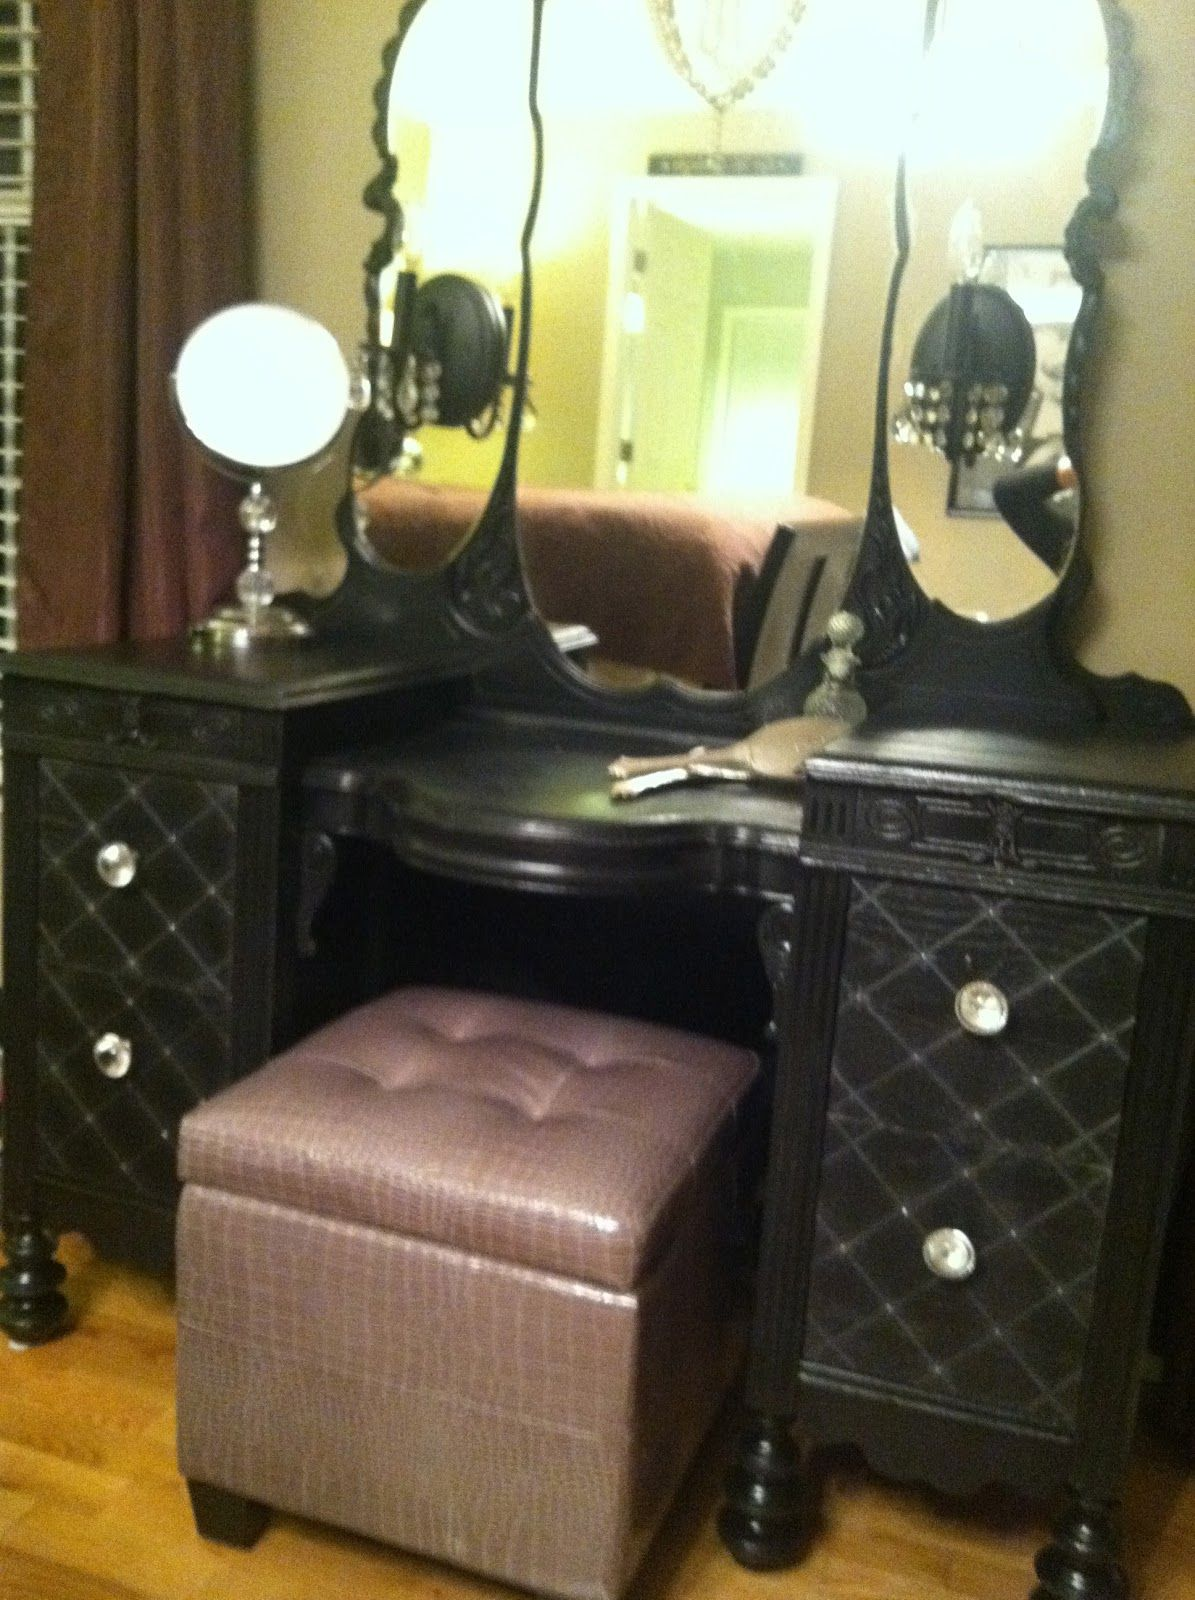 Vintage Makeup Vanity With Lights. diy vintage makeup vanity Like the look of this especially stool